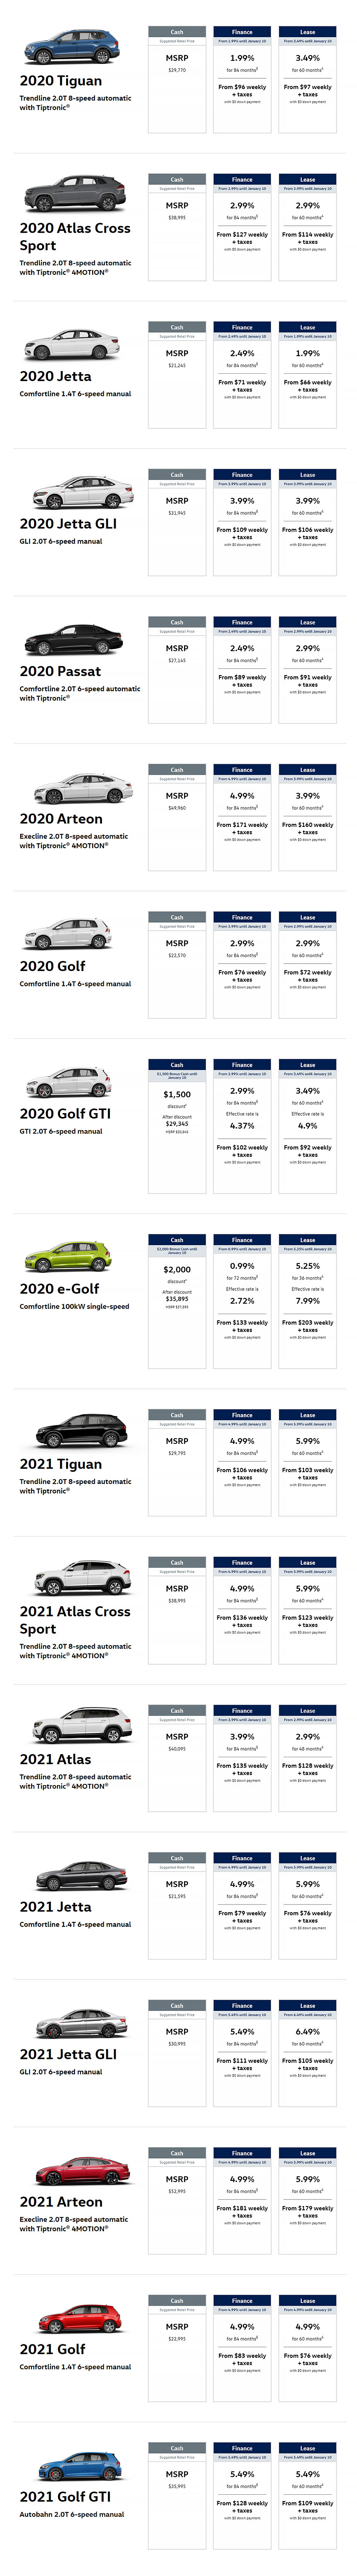 Vw 2021 Offers Page January